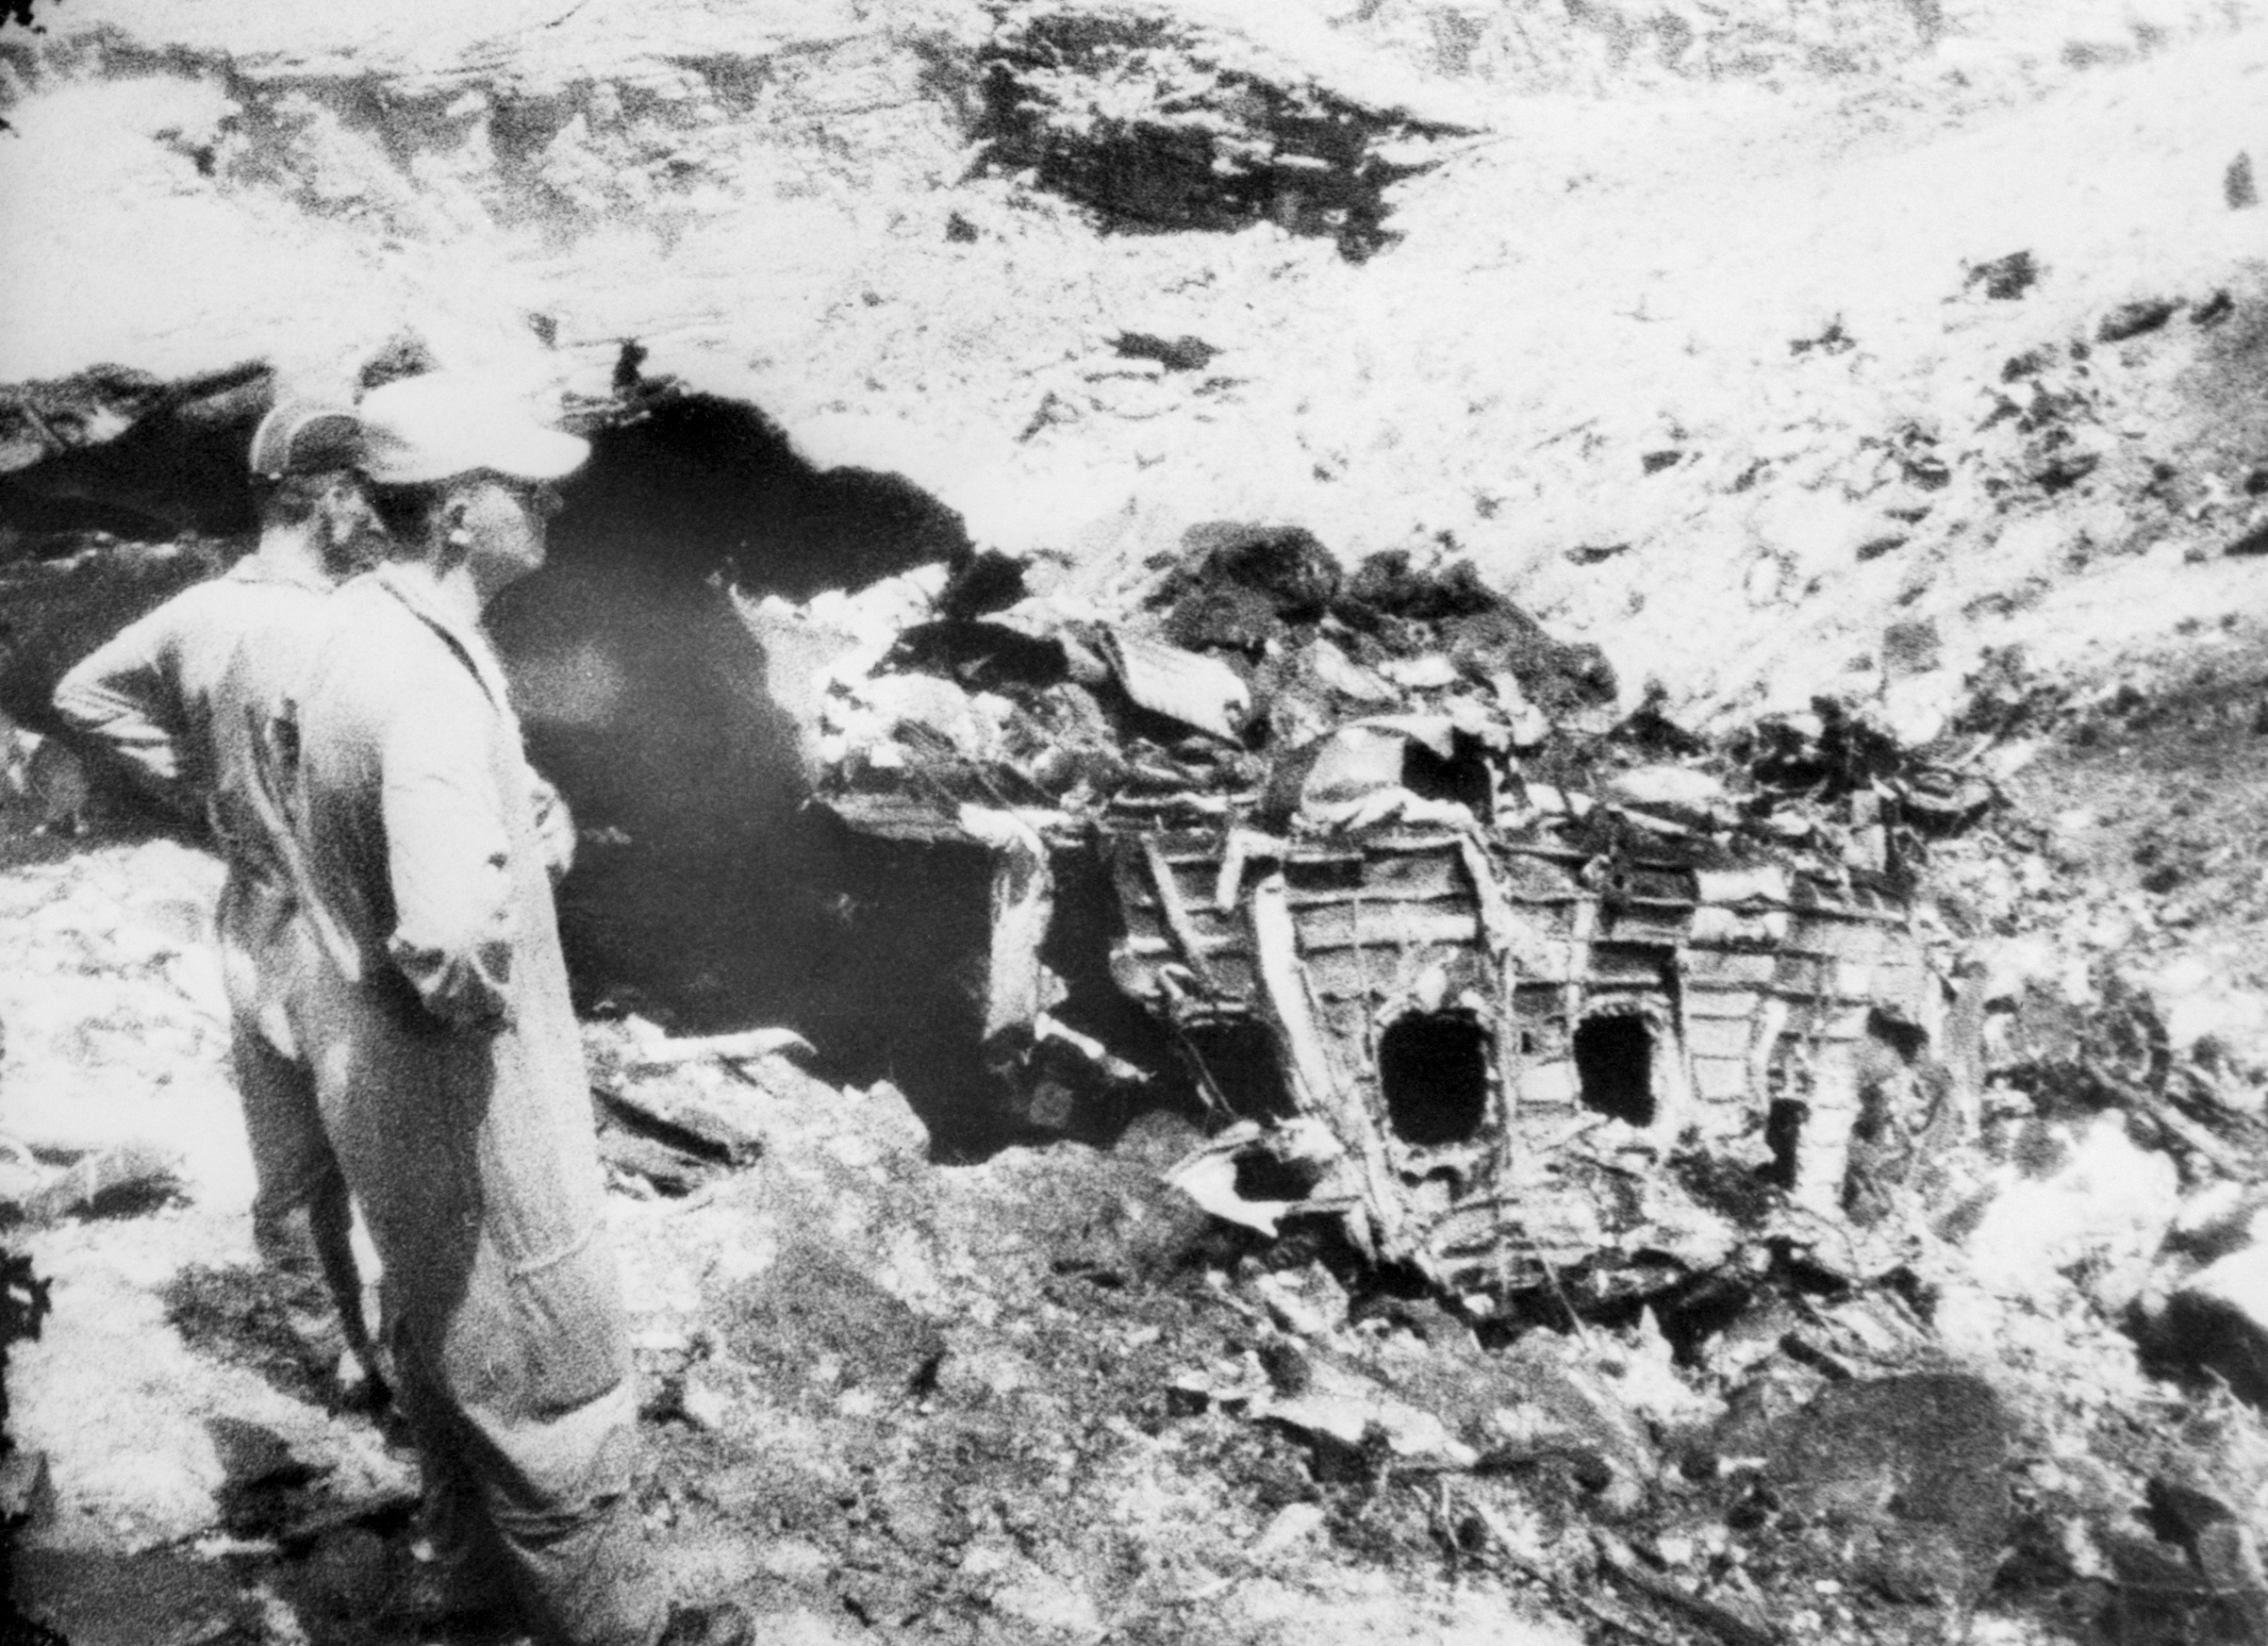 Two men from the rescue party looking at a section of the wrecked fuselage of the TWA Super constellation plane that crashed in the Grand Canyon, in July of 1956.